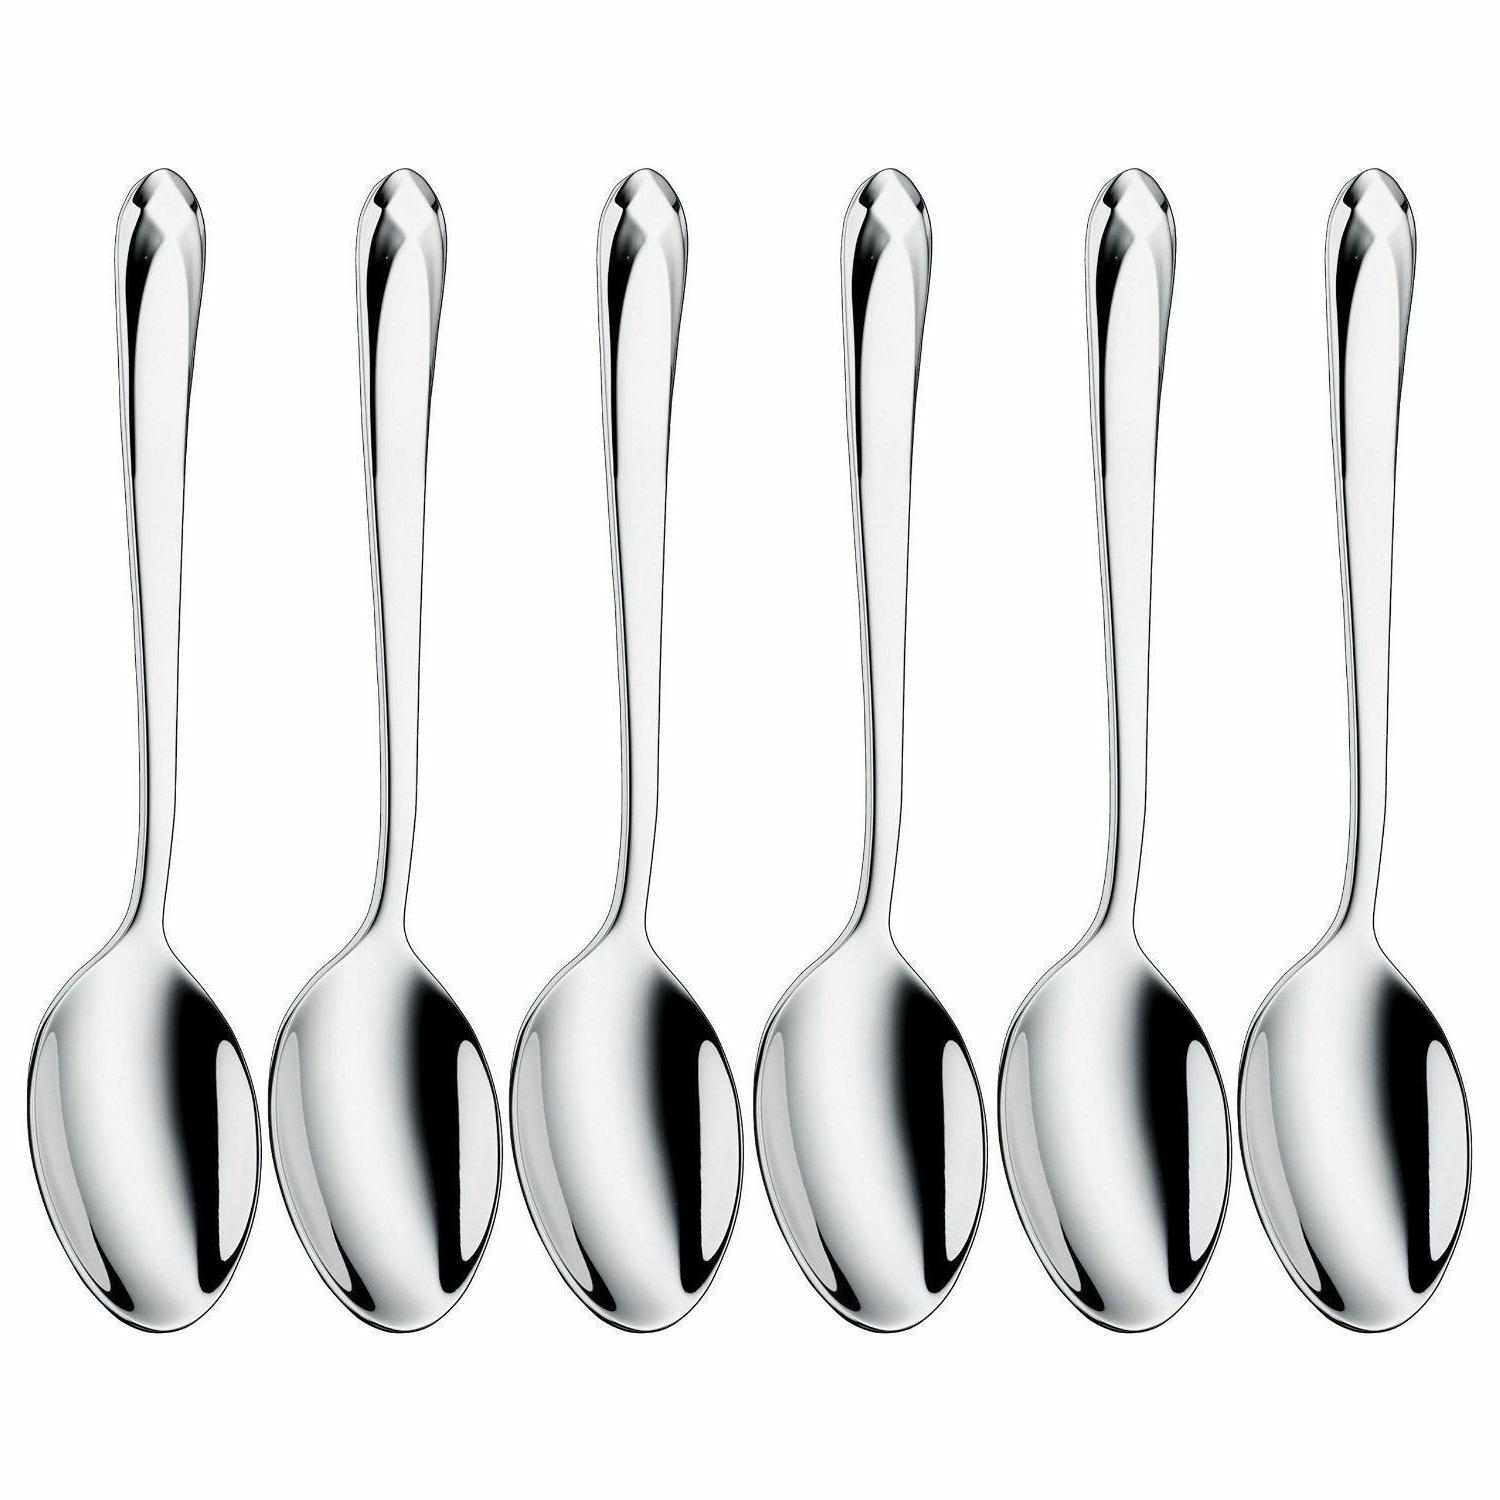 WMF Juwel Set of 6 Stainless Steel Espresso Spoons